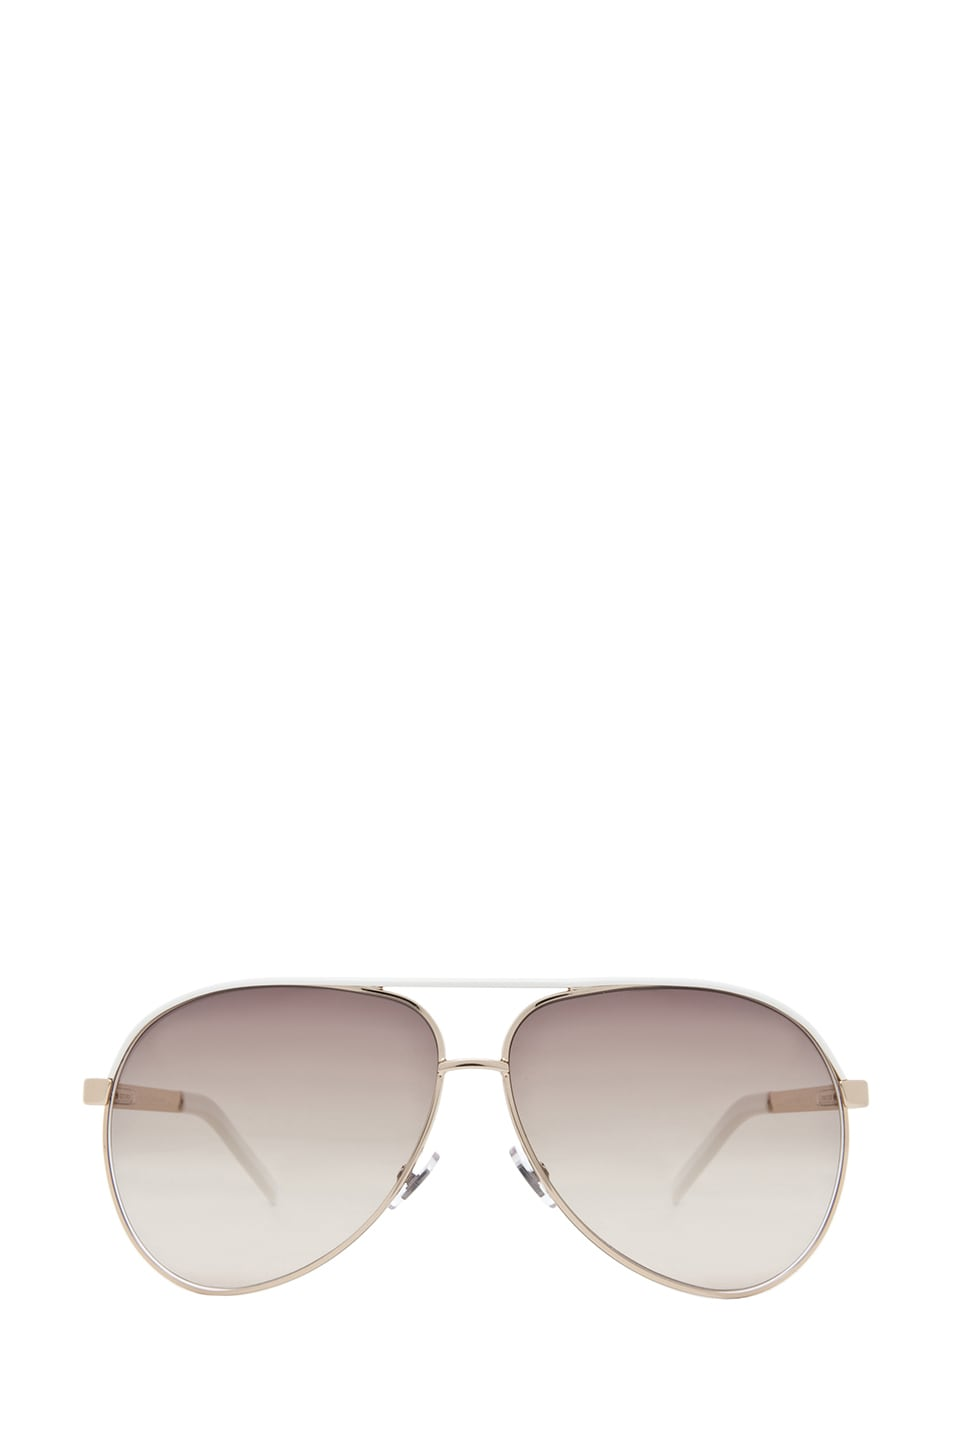 9a5f70a7345d Image 1 of Gucci 1827 Sunglasses in Gold & Brown Gray Gradient